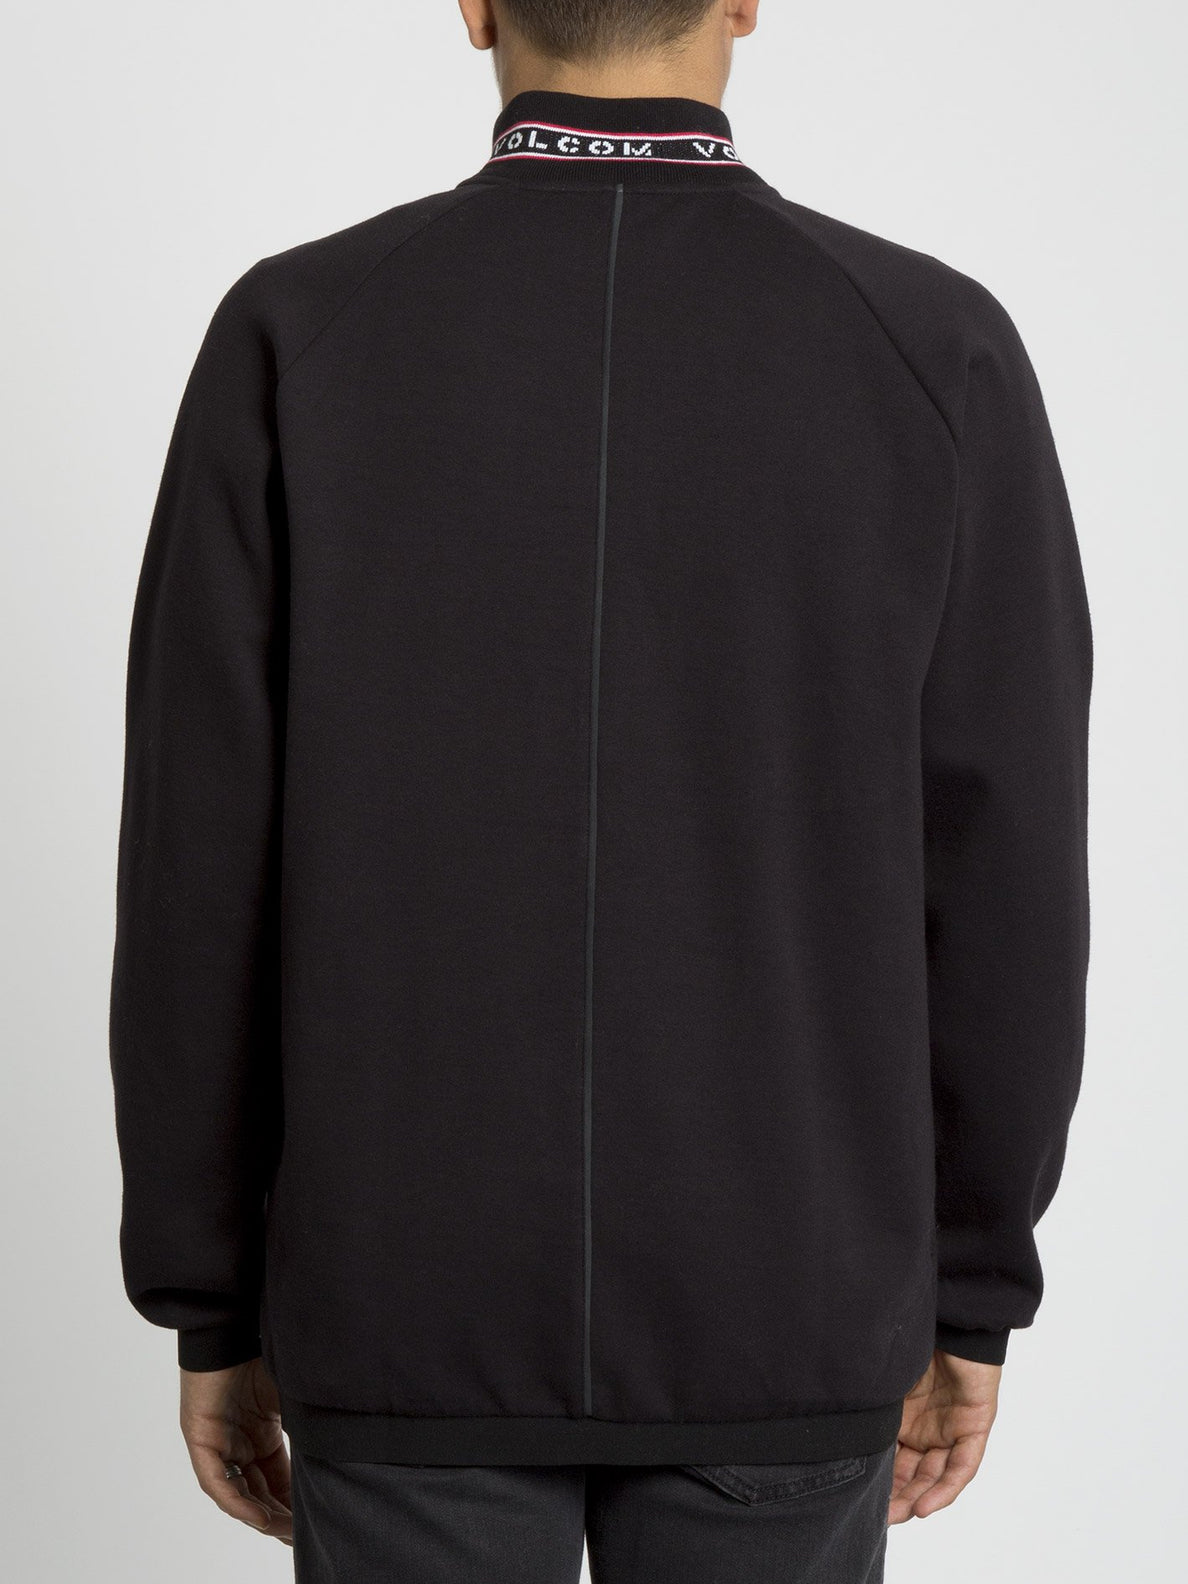 Rixon Tech Sweater - Black (A4631908_BLK) [B]